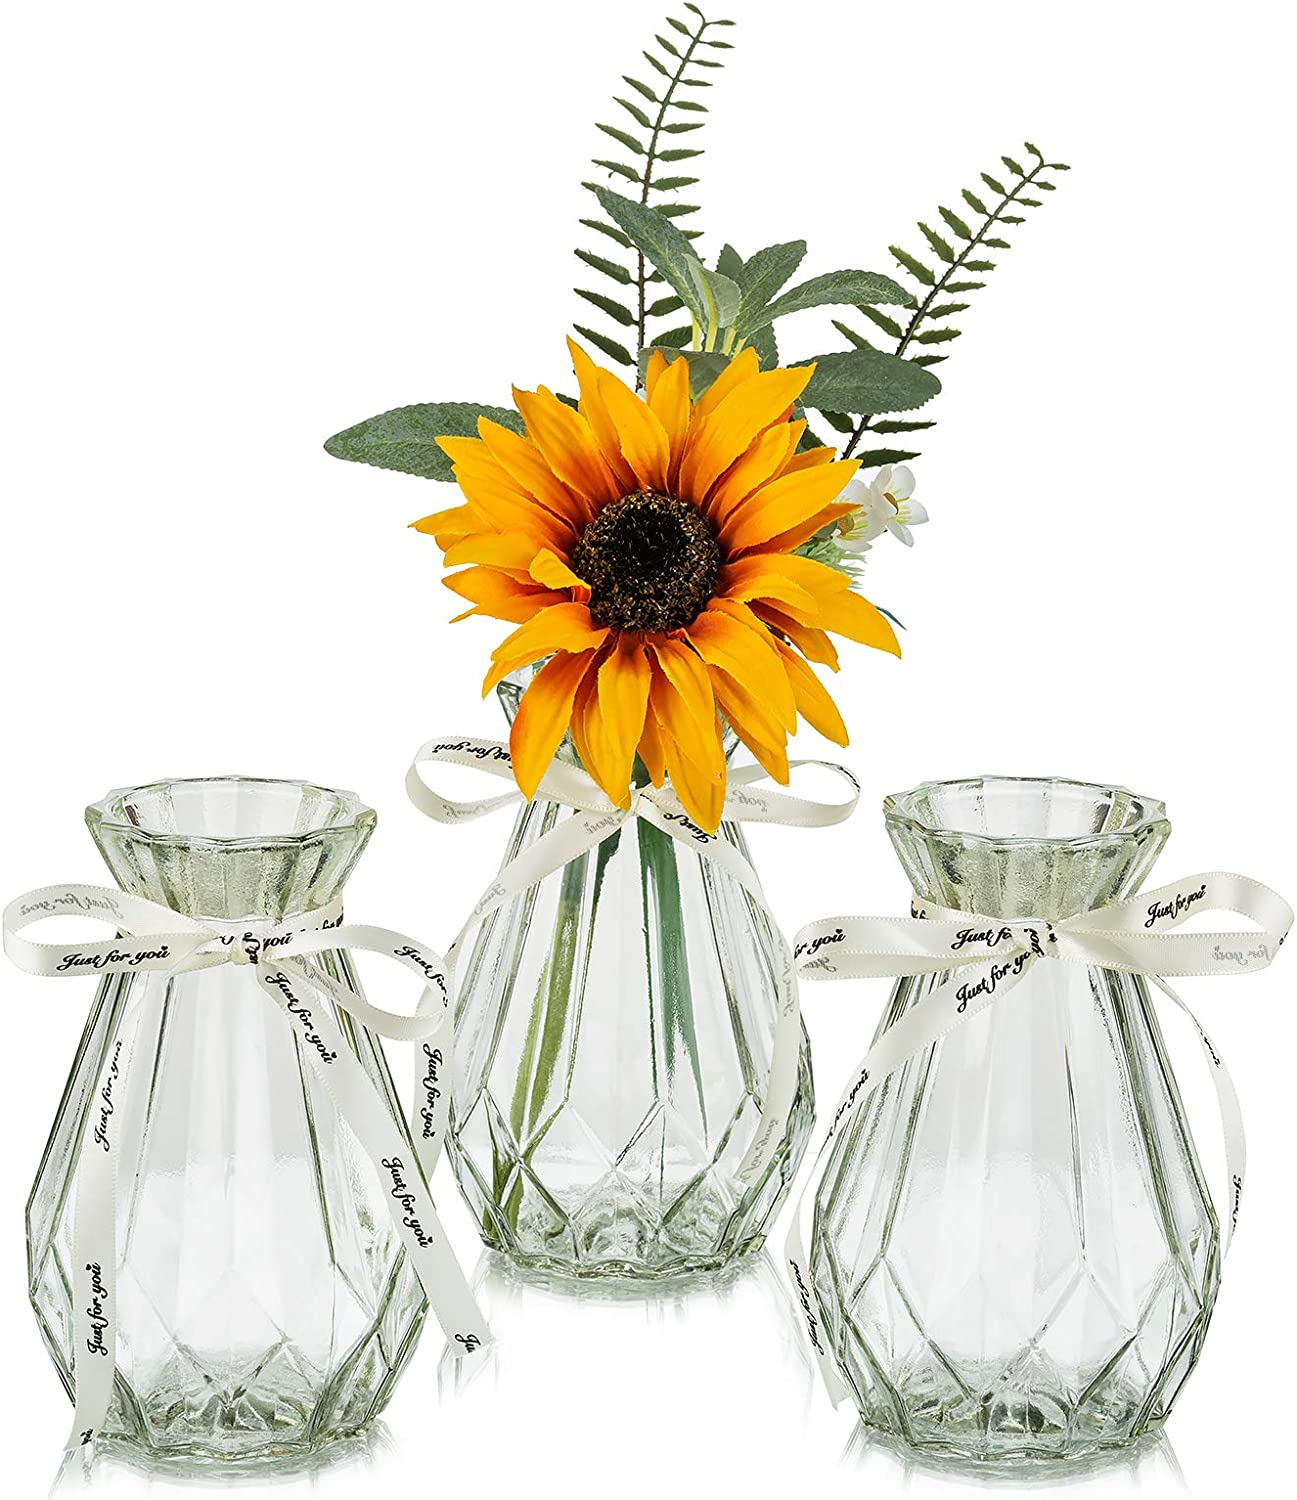 Garden Decoration Home Hyacinth Flower Vases Glass with Twine Rope 3 Pcs//Set Floral Arrangements Artificial with Vase Unique Shapes Creative for Wedding